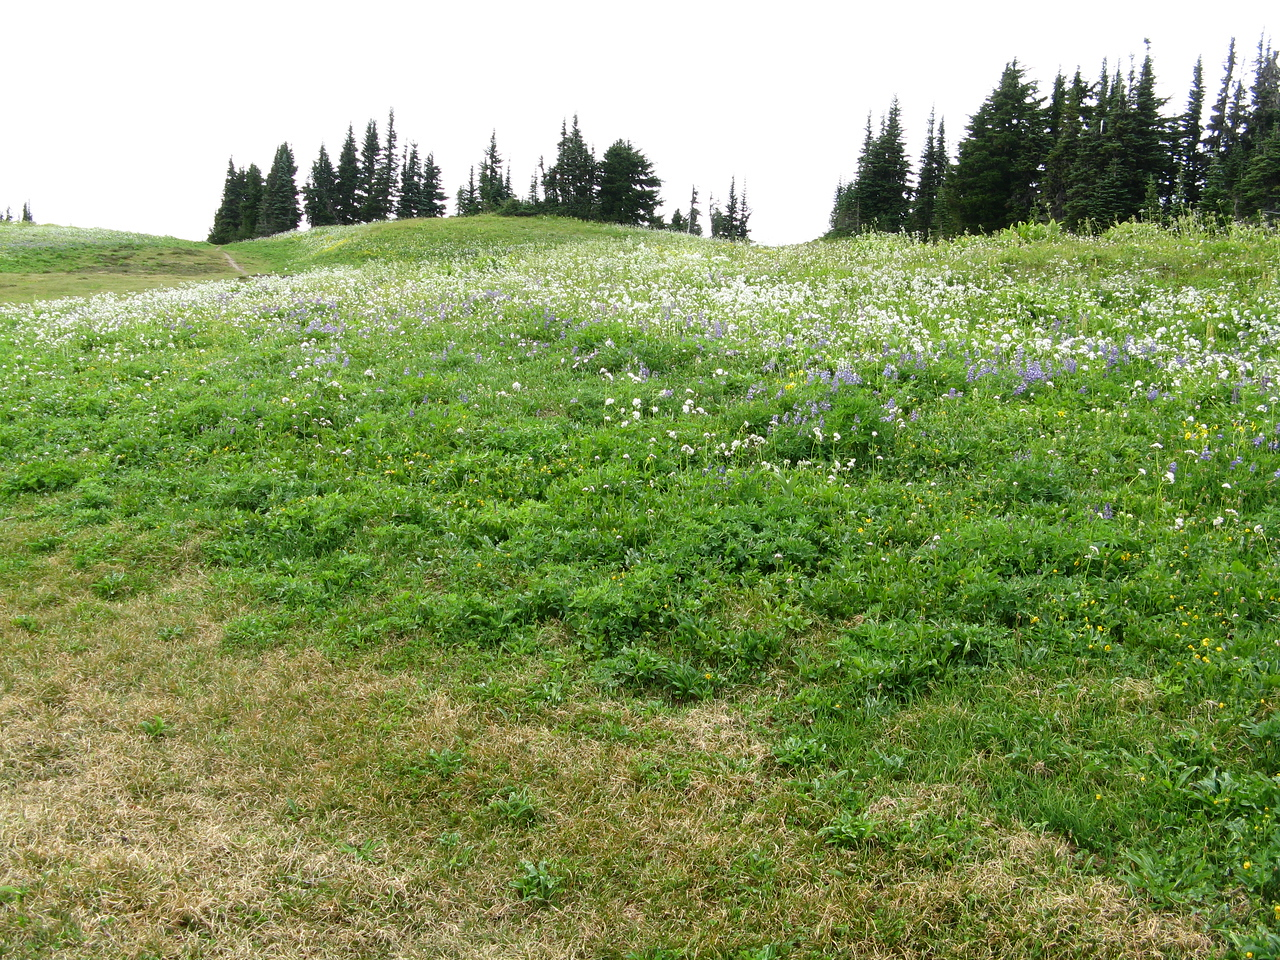 Wildflowers and evergreens.